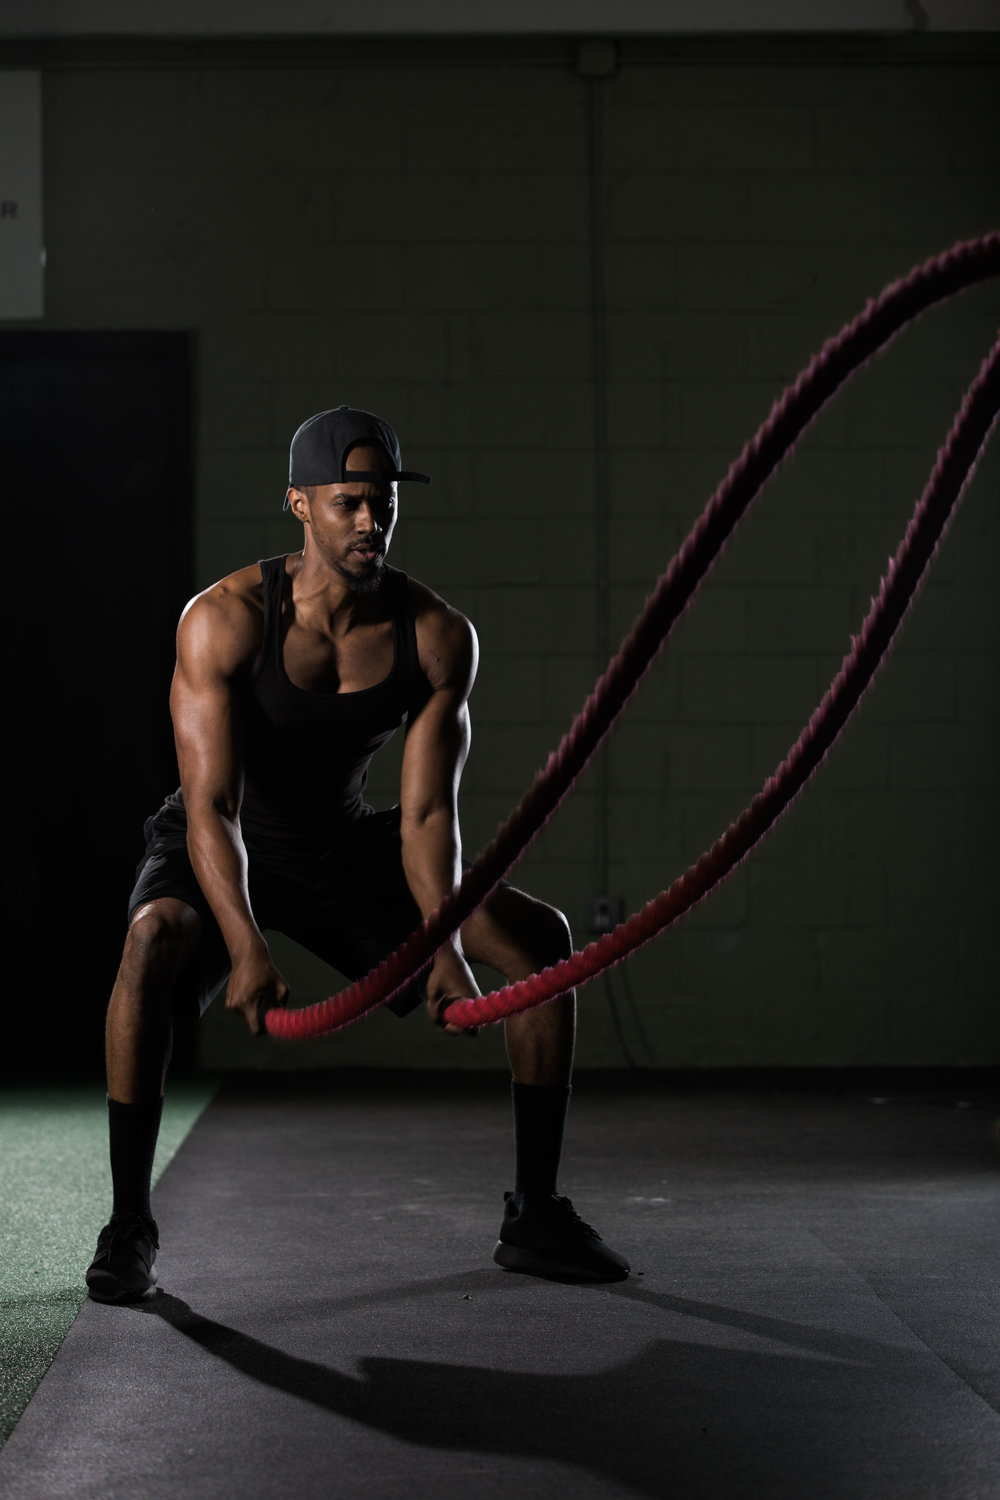 ELITE ATHLETE TRAINING - 48 SESSION PACKAGE   Features: Access to App Reservation, Fitmetrix Heart Rate Tracking, 1 Complimentary Personal Training Session (30 Minutes), 1 Complimentary Nutrition Coaching Session (30 Minutes)